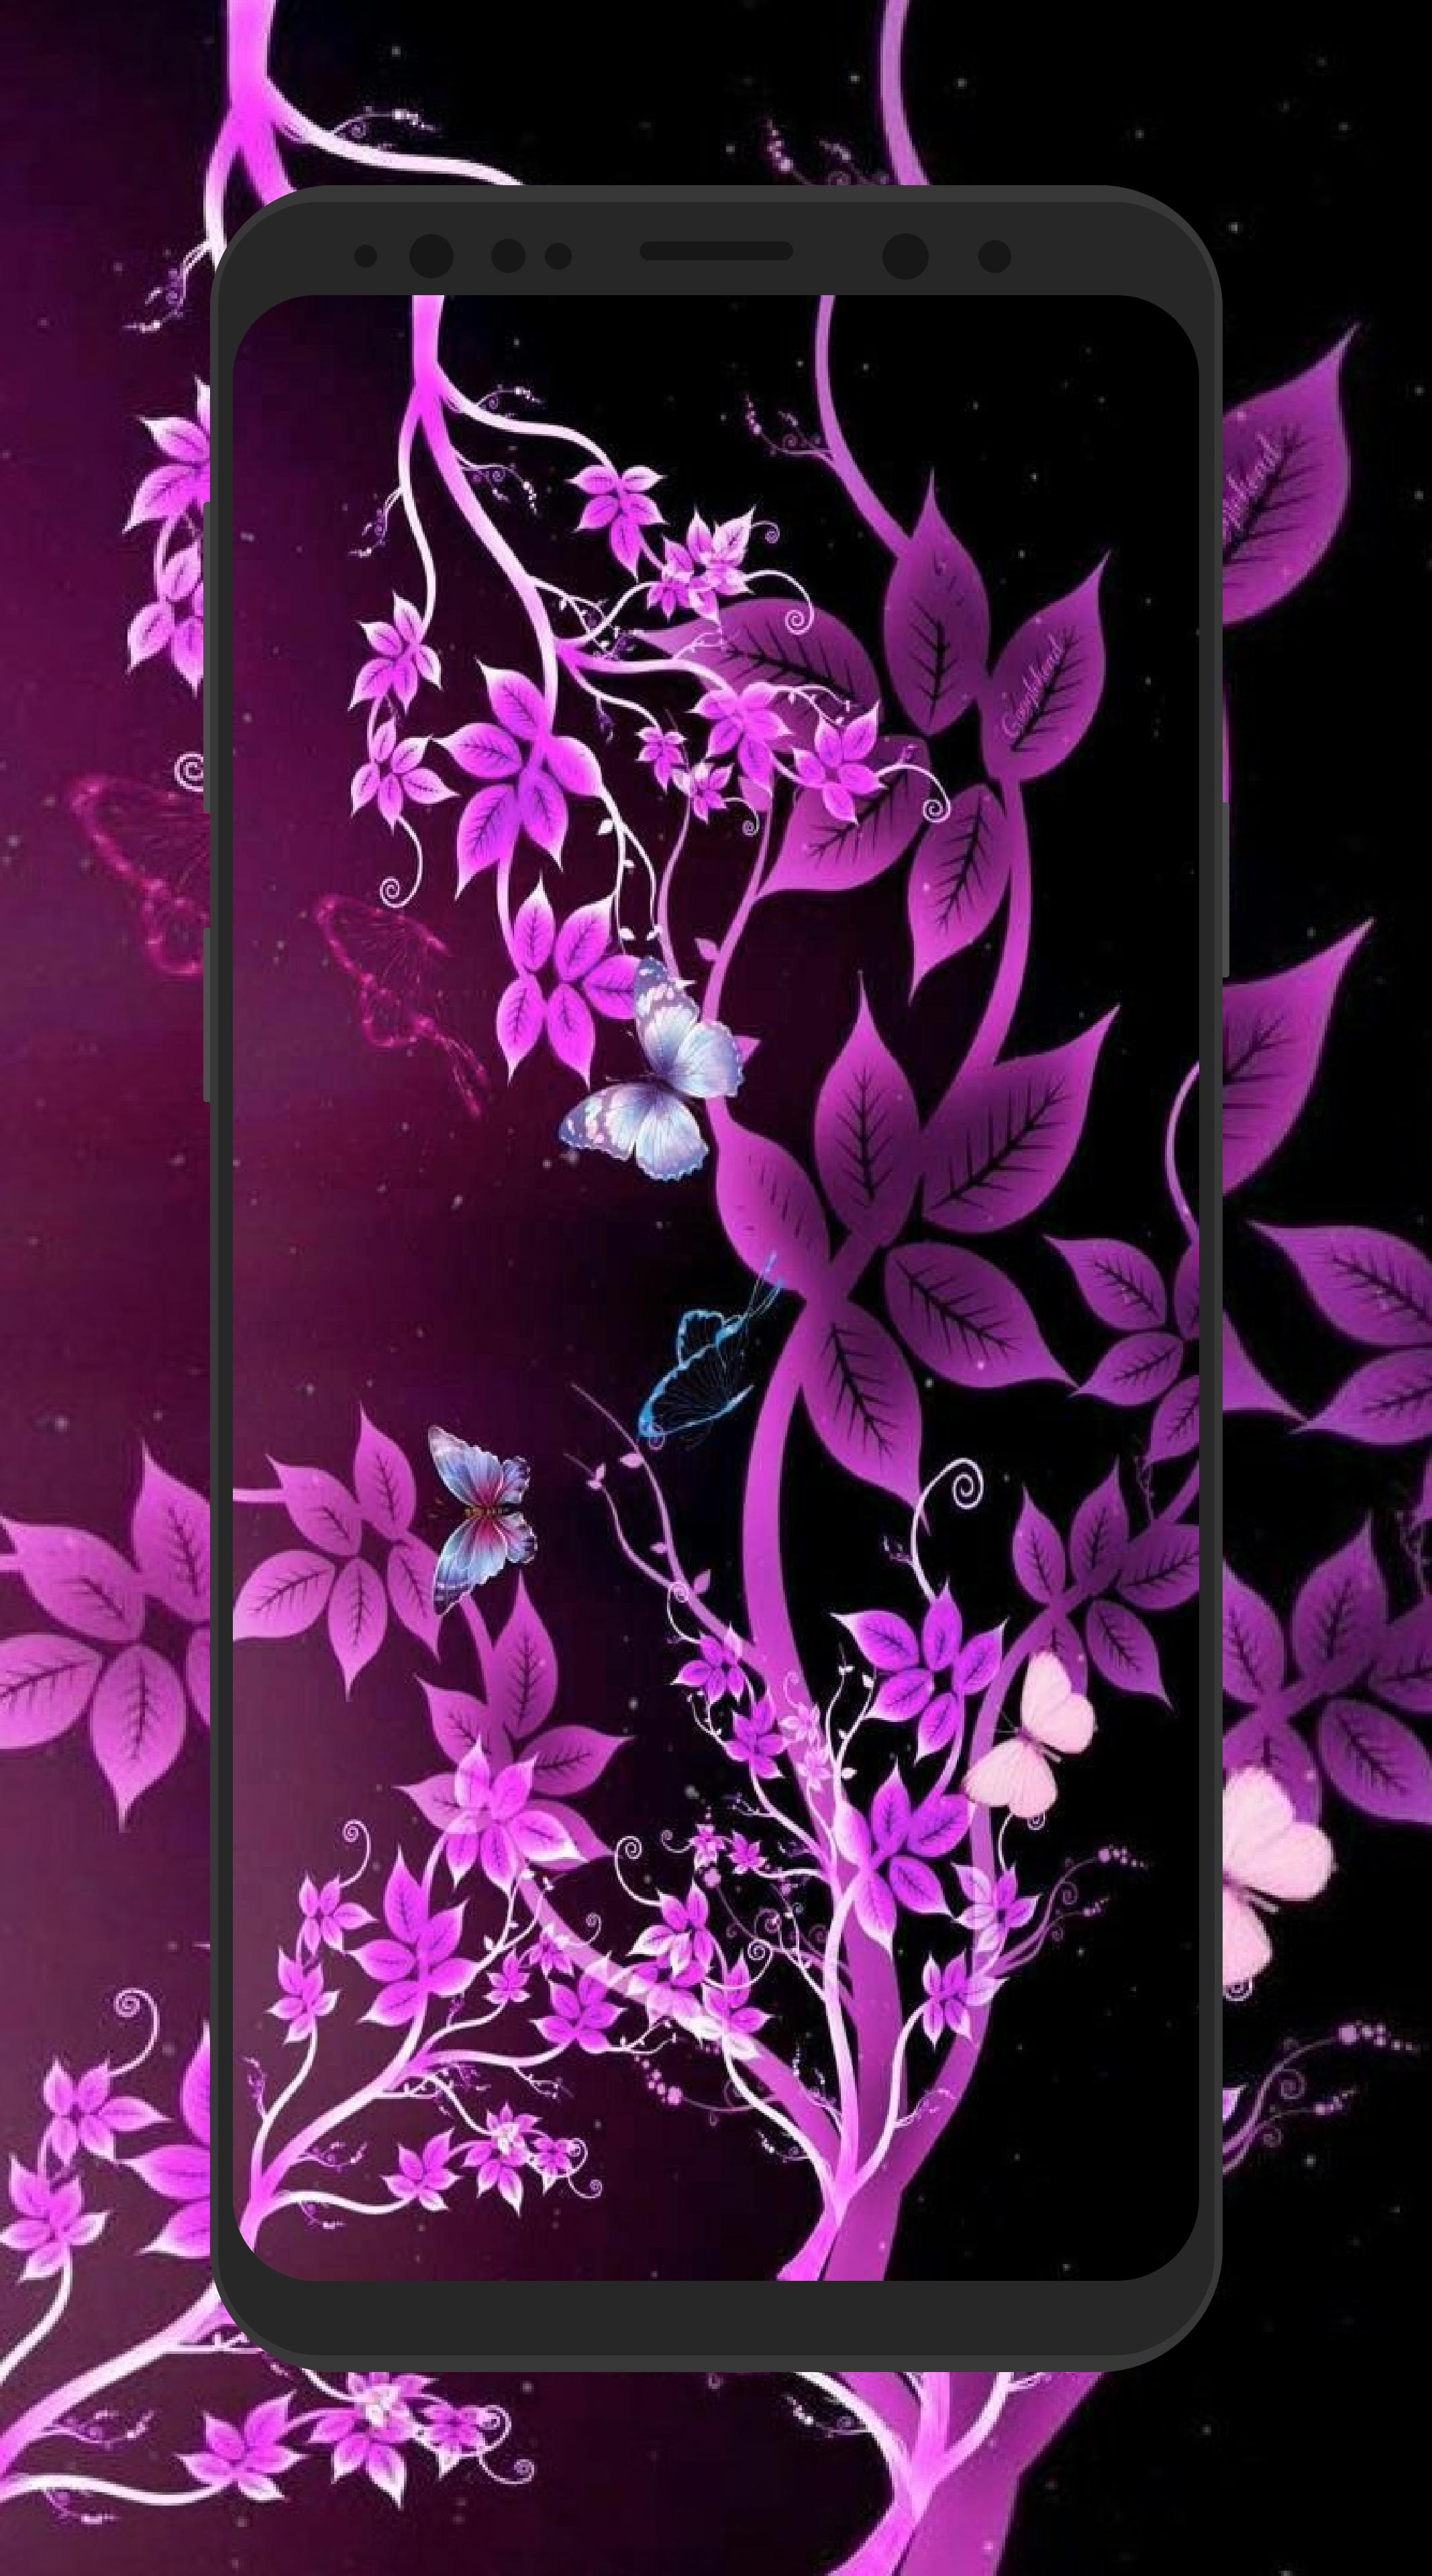 Hd 3d Flower Wallpapers For Android Apk Download